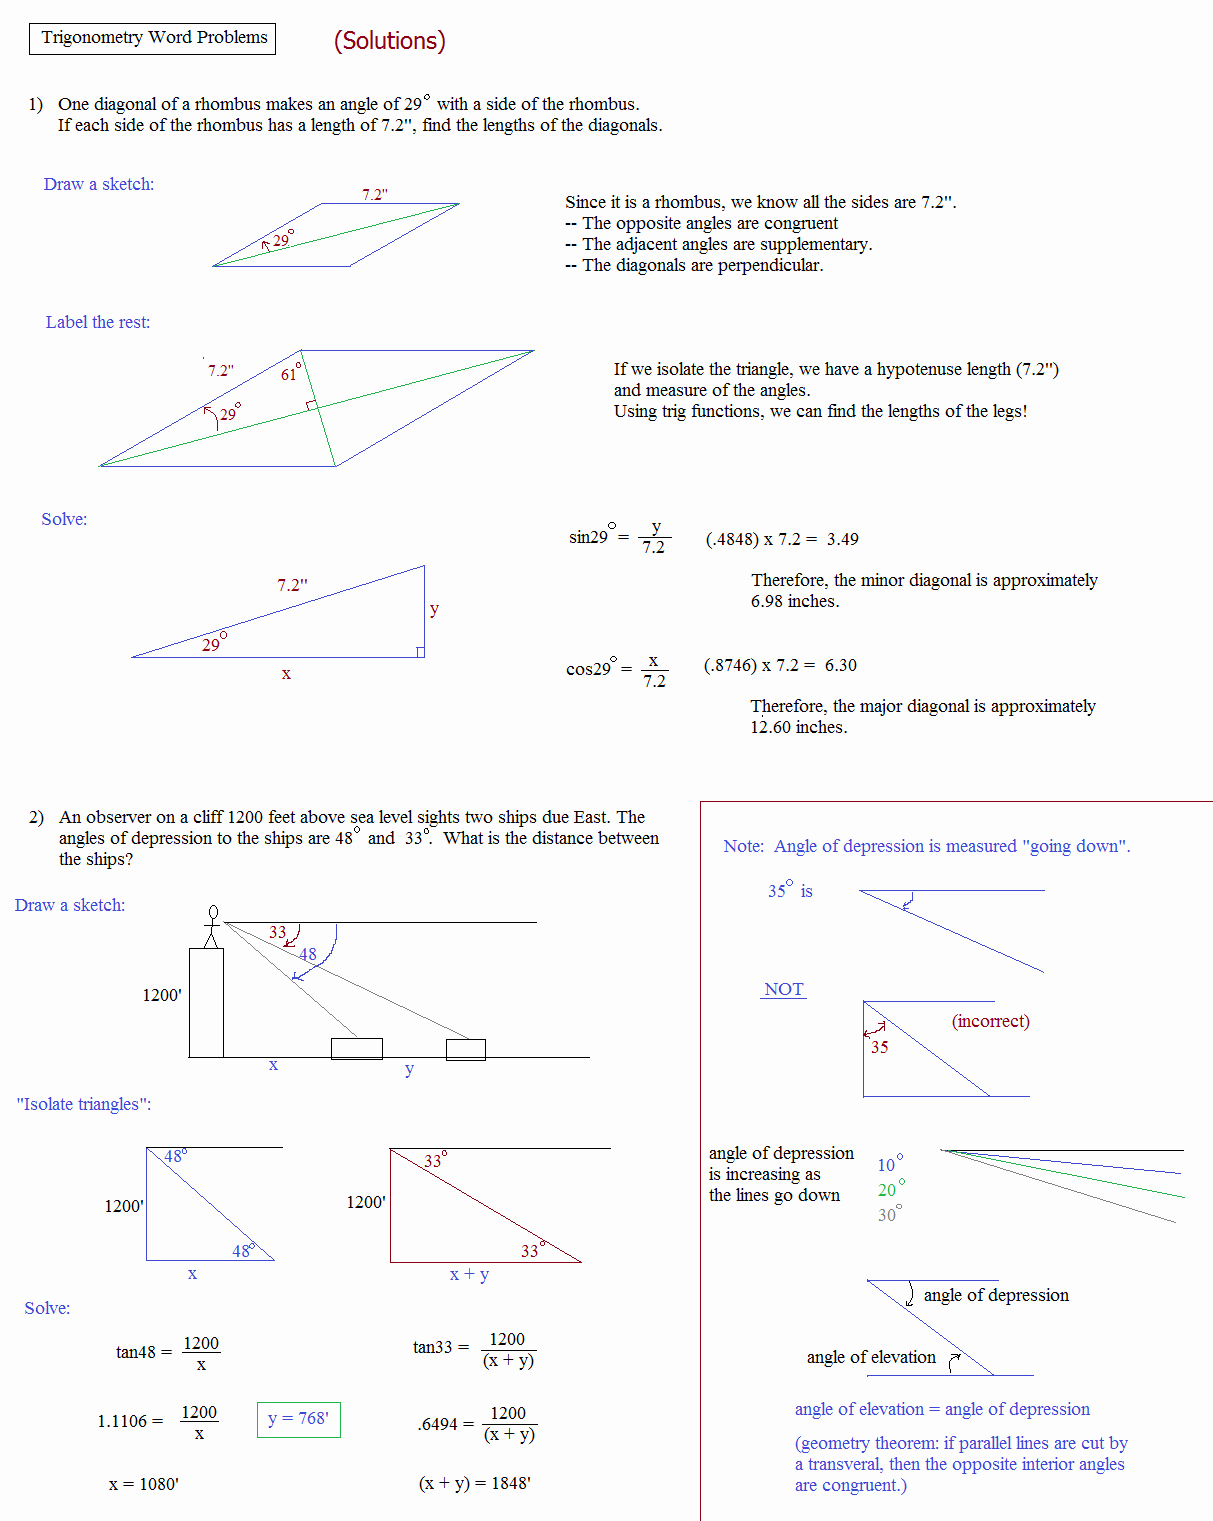 Trig Word Problems Worksheet Answers Inspirational Math Plane Trigonometry Word Problems